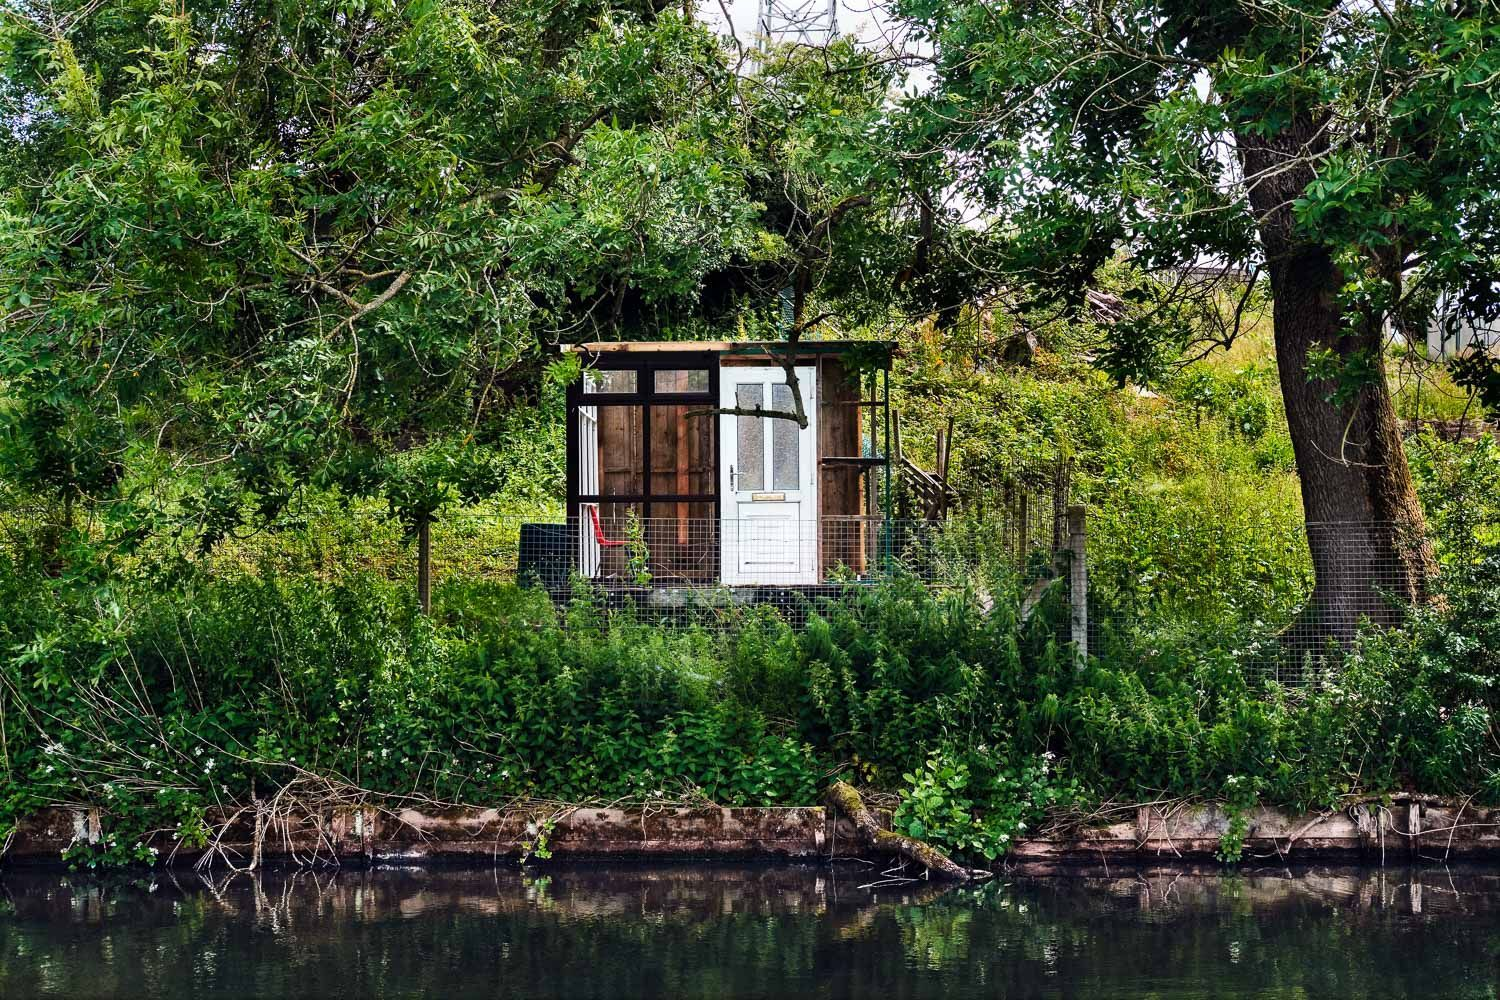 Summer house on canal, Burnley